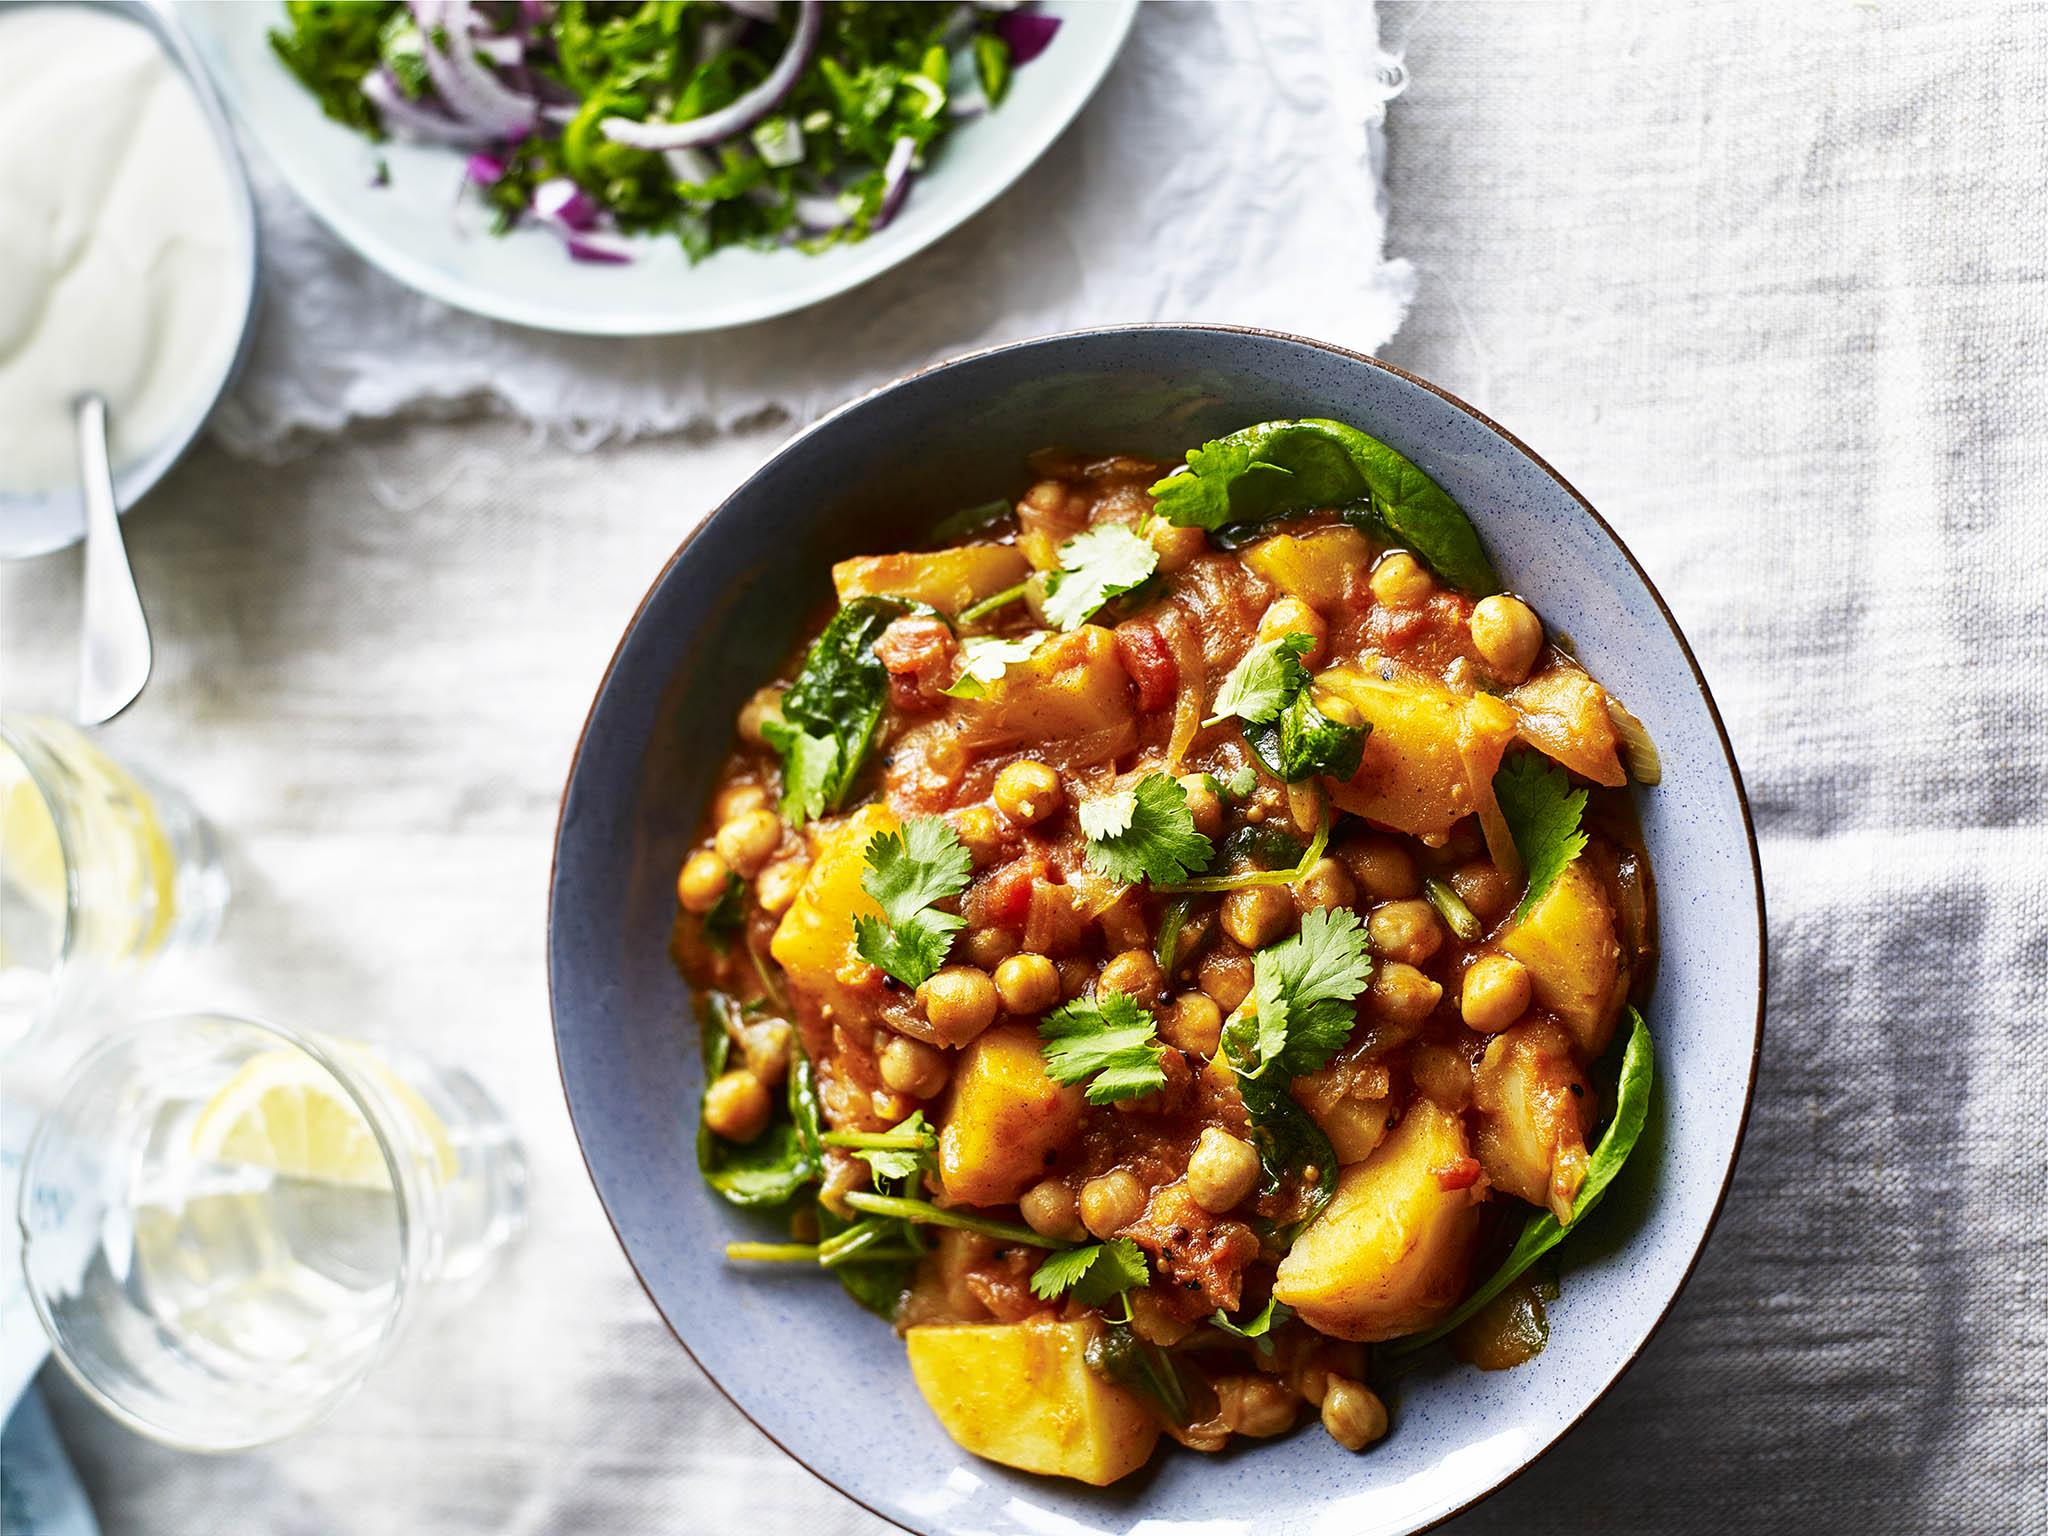 How to make Indian-inspired potato and chickpea masala curry 1